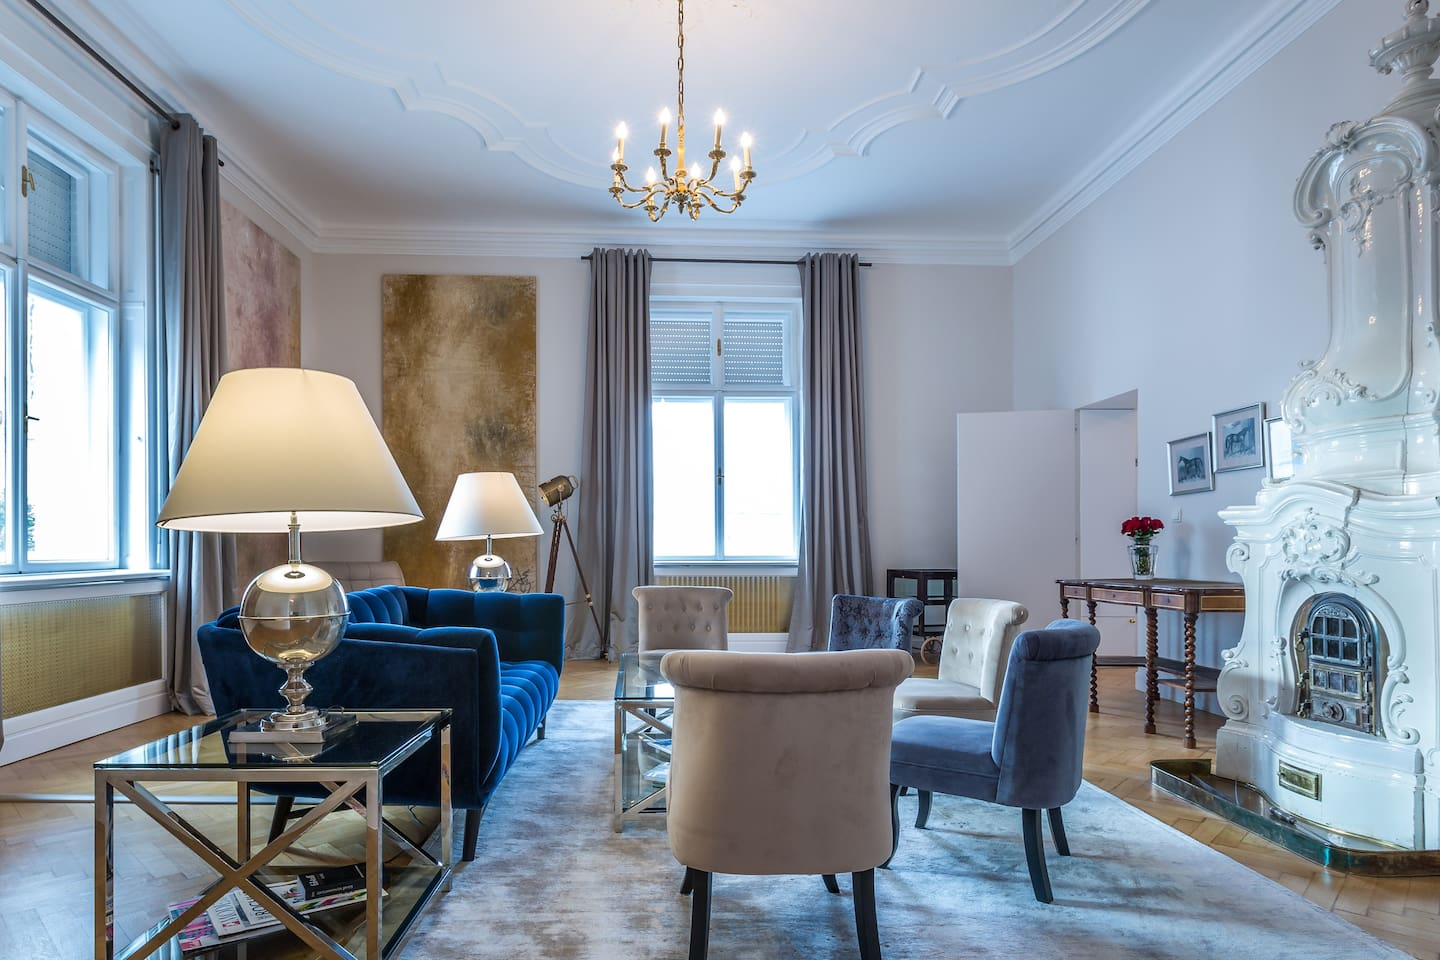 Luxury Design 180m²-Palais Apartment - Apartments for Rent in Vienna ...